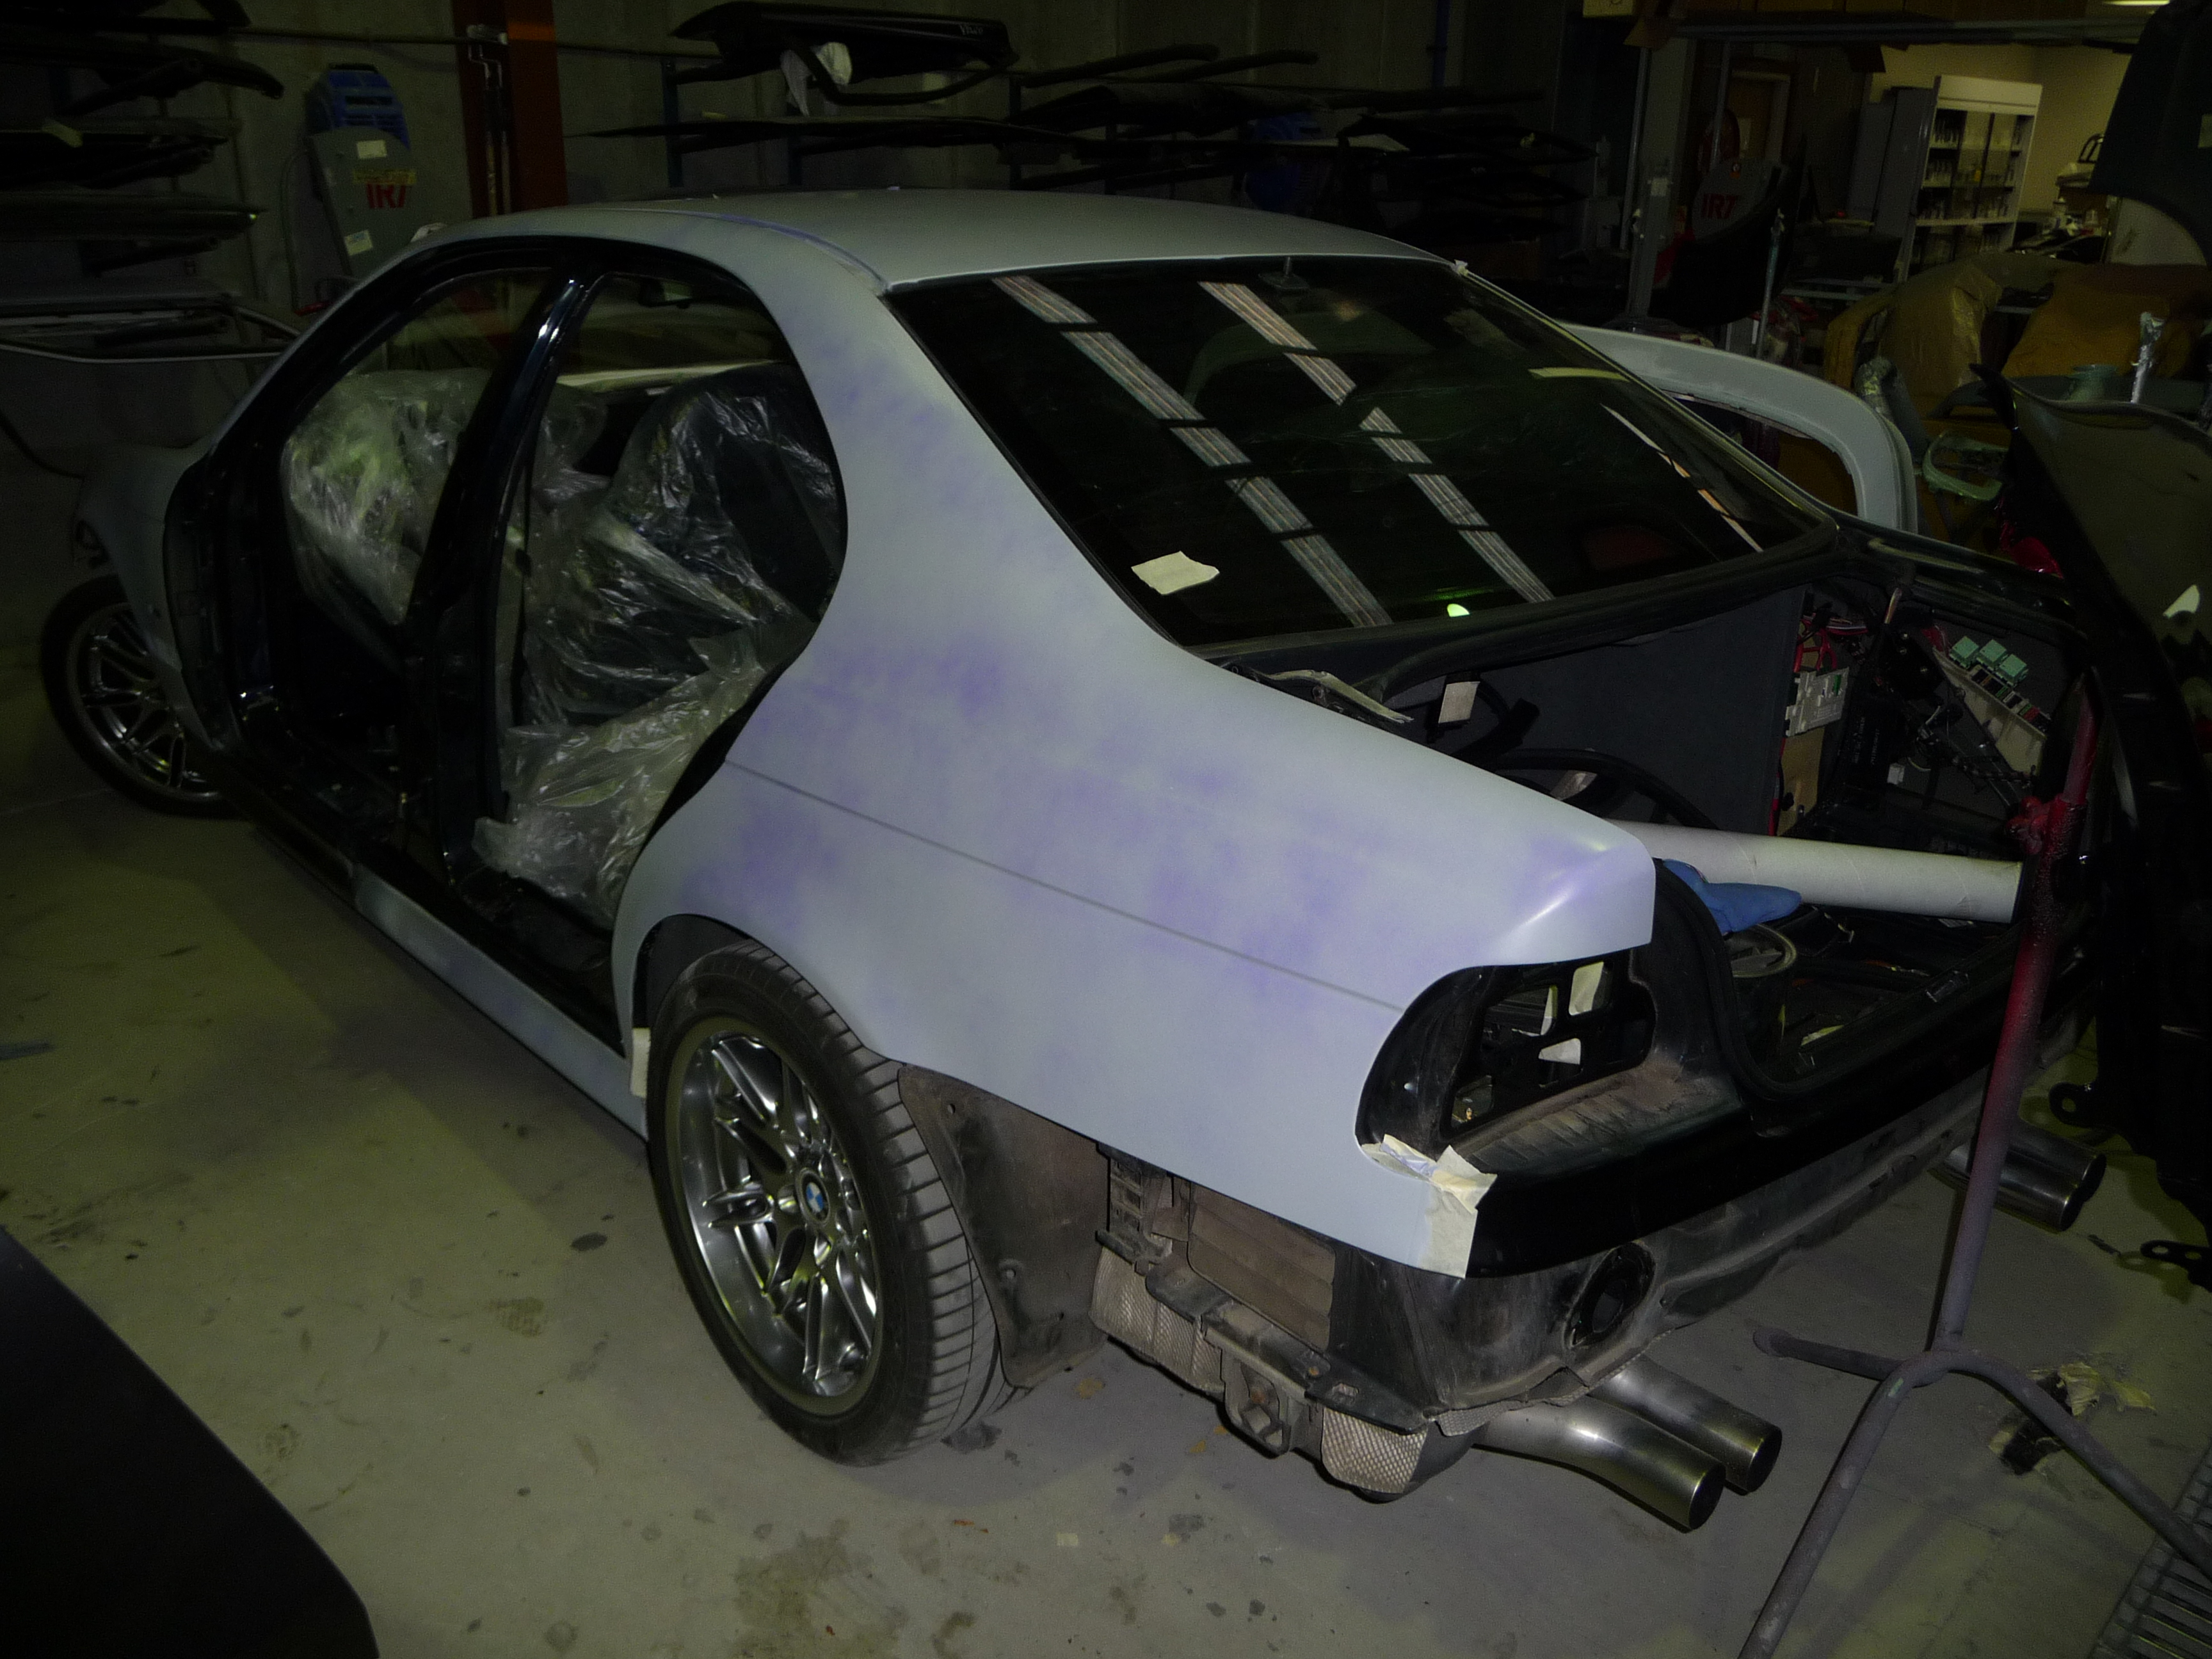 My Carbon Black bare metal respray - progress photos-m5-primer-001.jpg